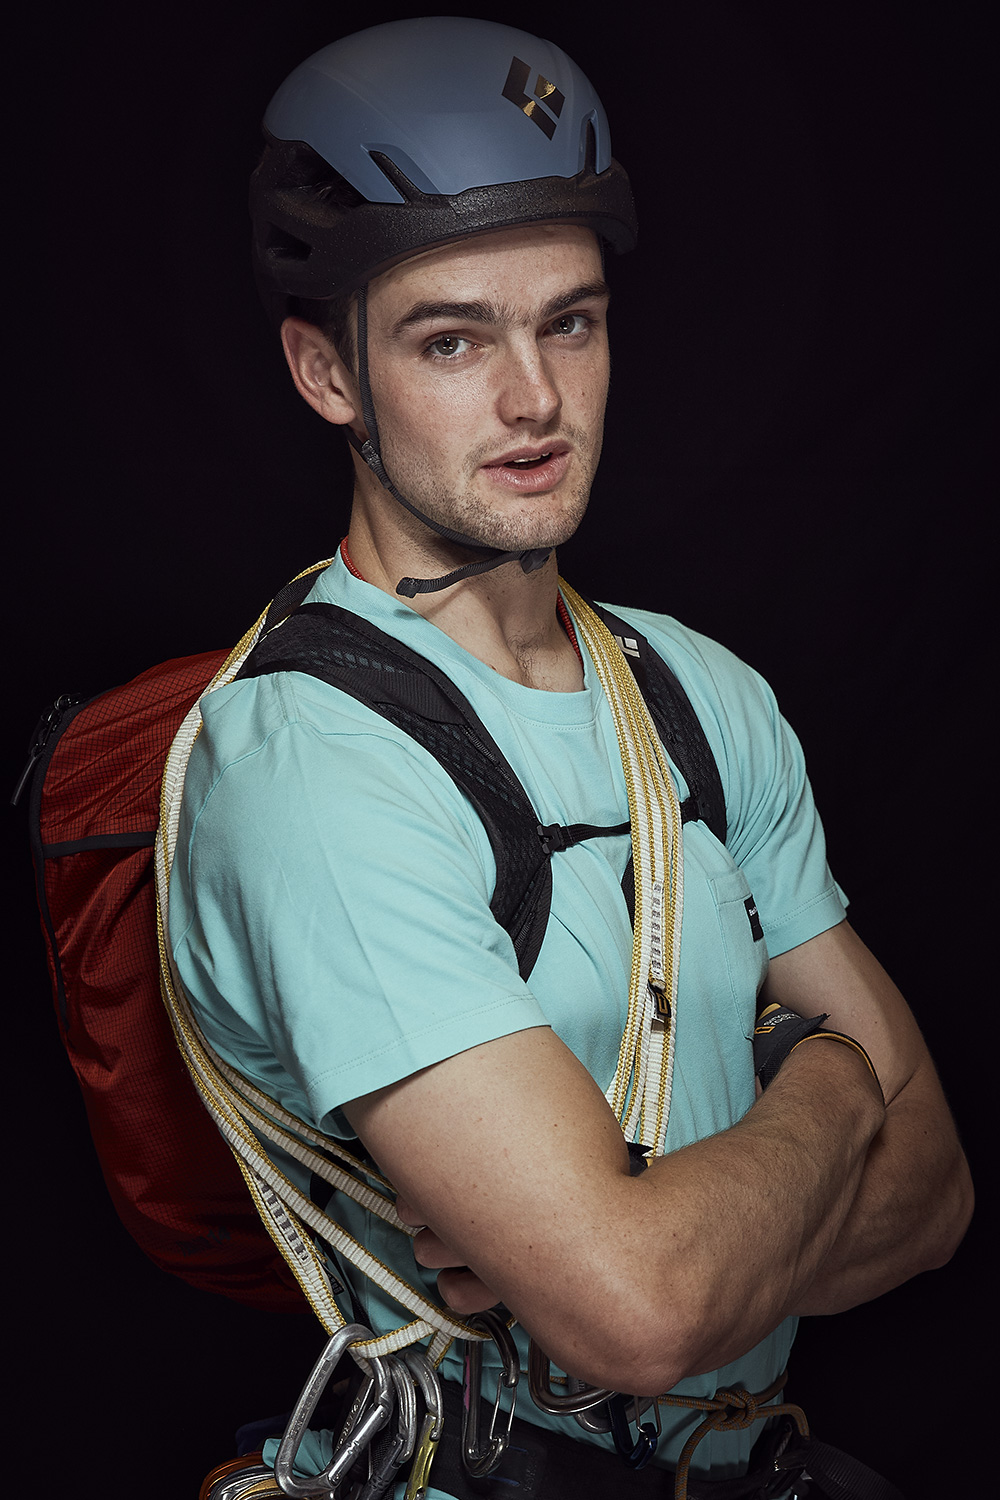 portrait of a mountain athlete with his gear infront of a black background